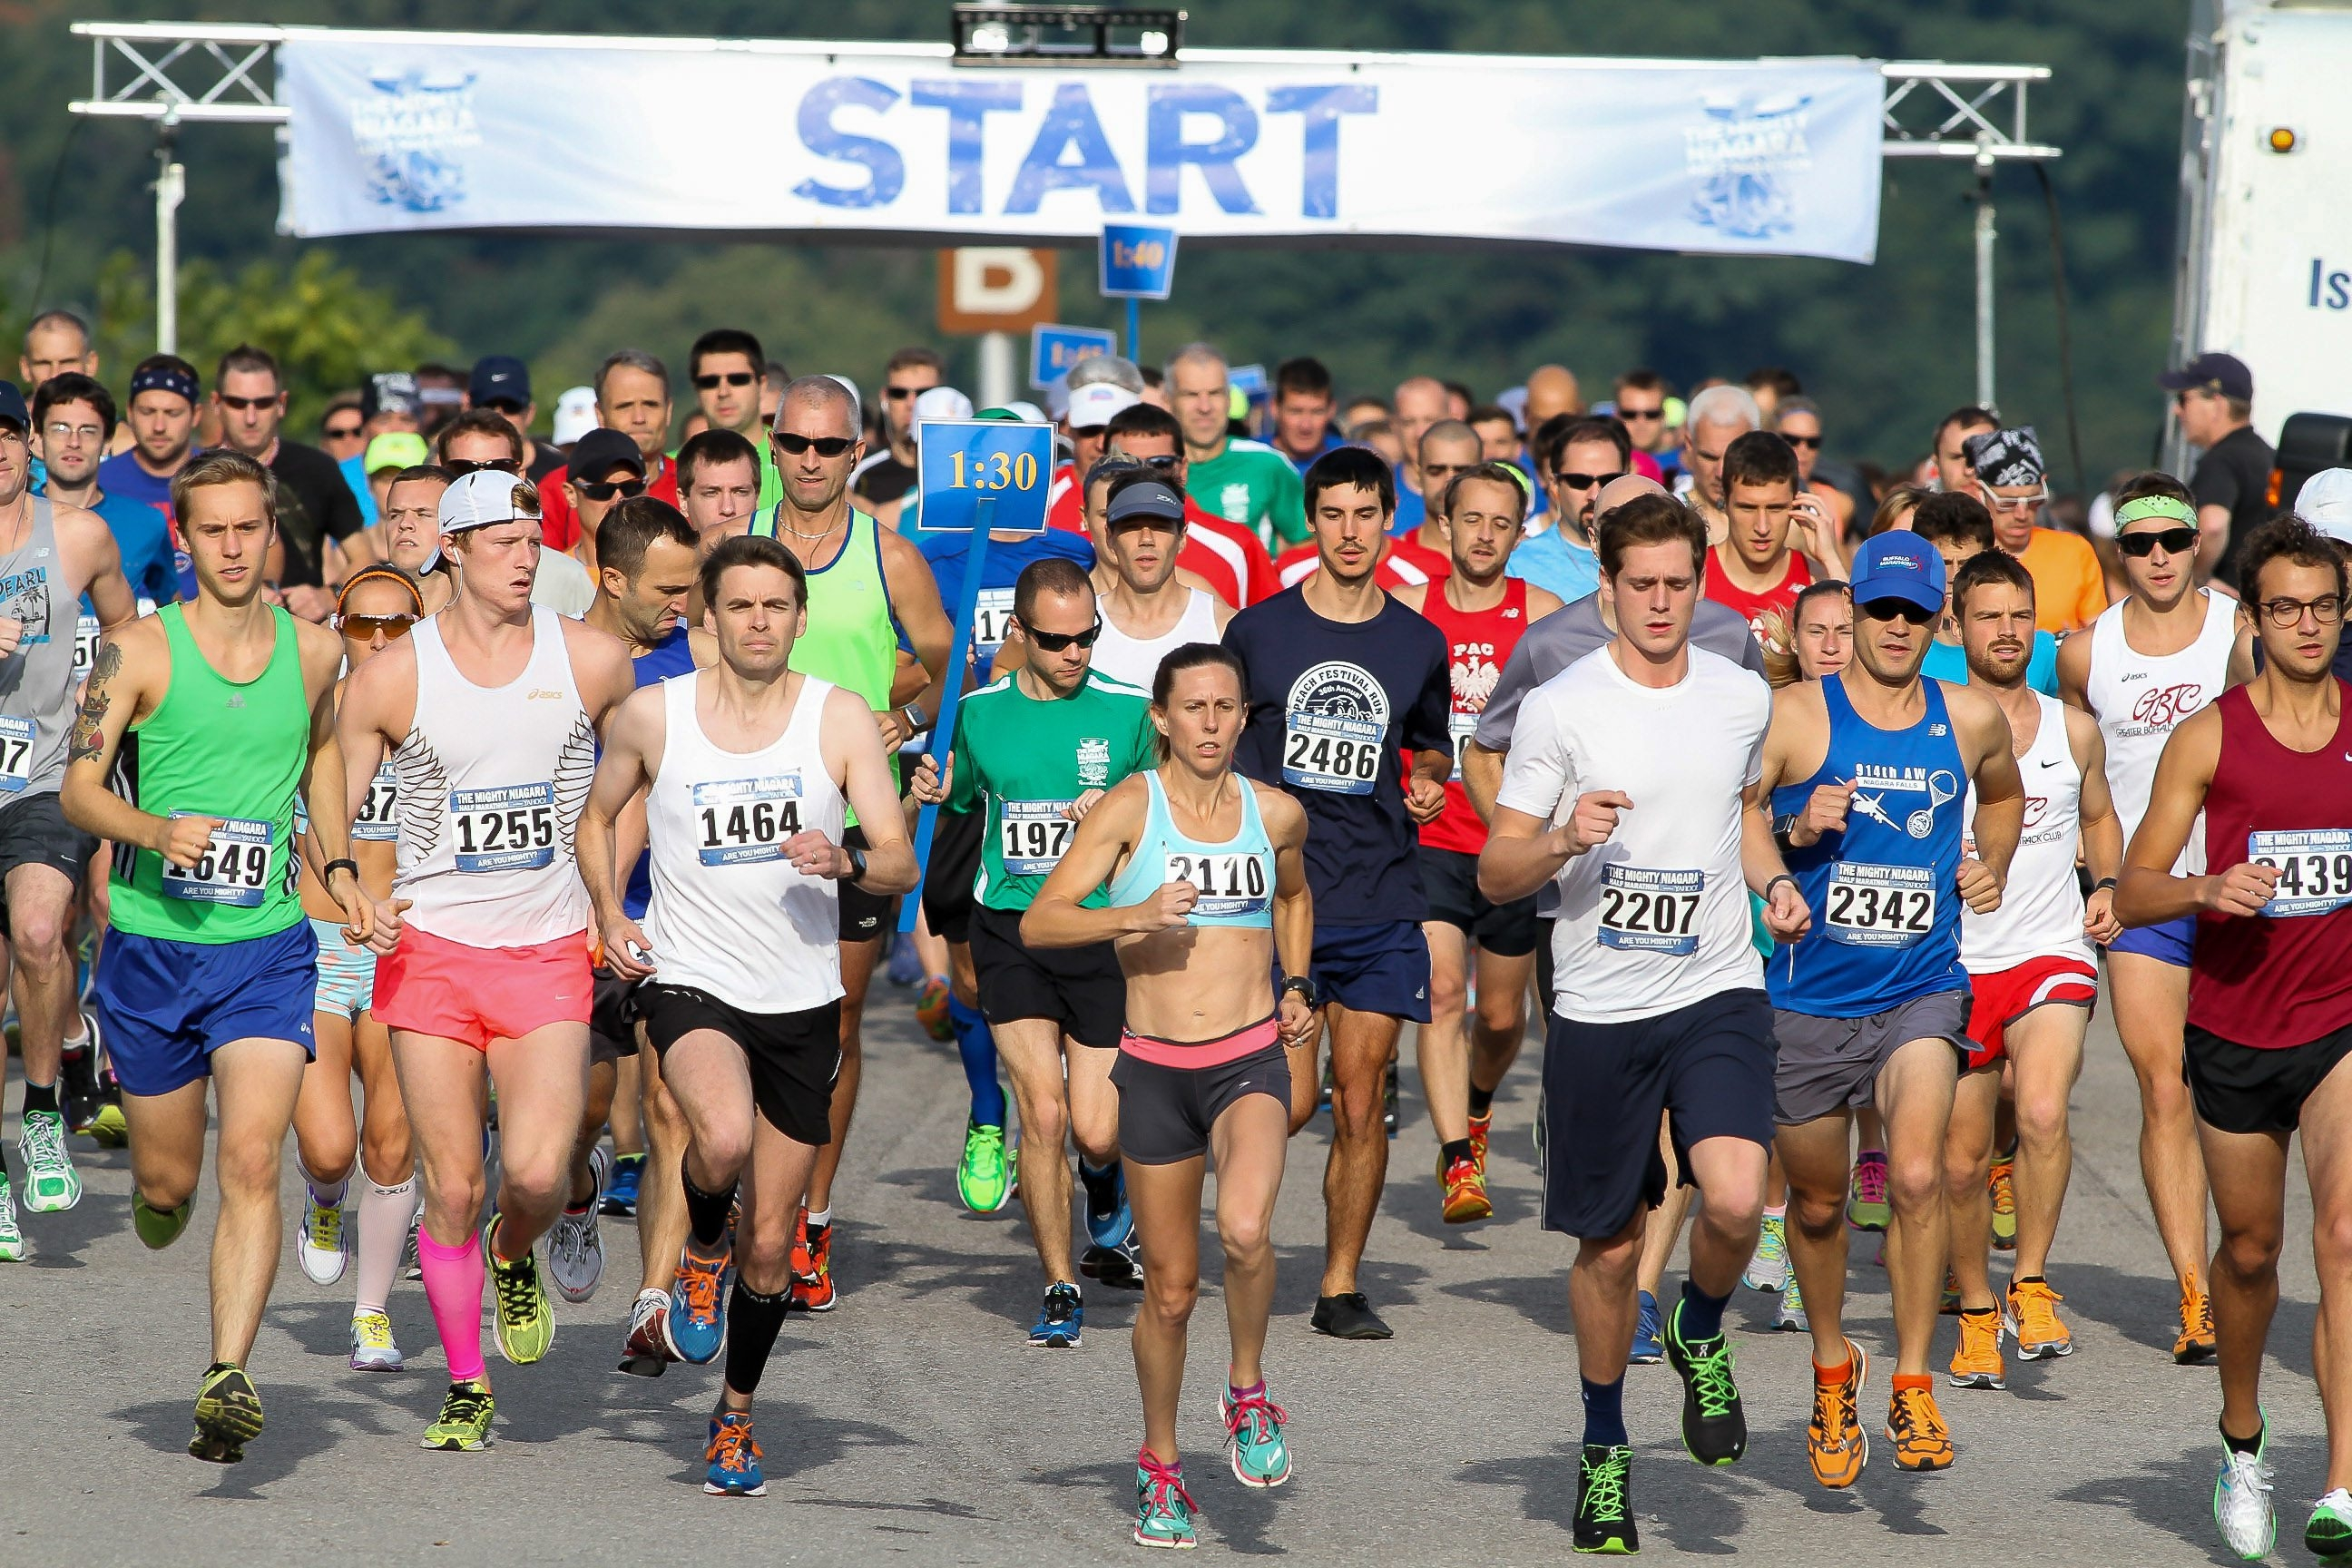 Half marathon runners stepped off smartly from the starting line in a previous race.